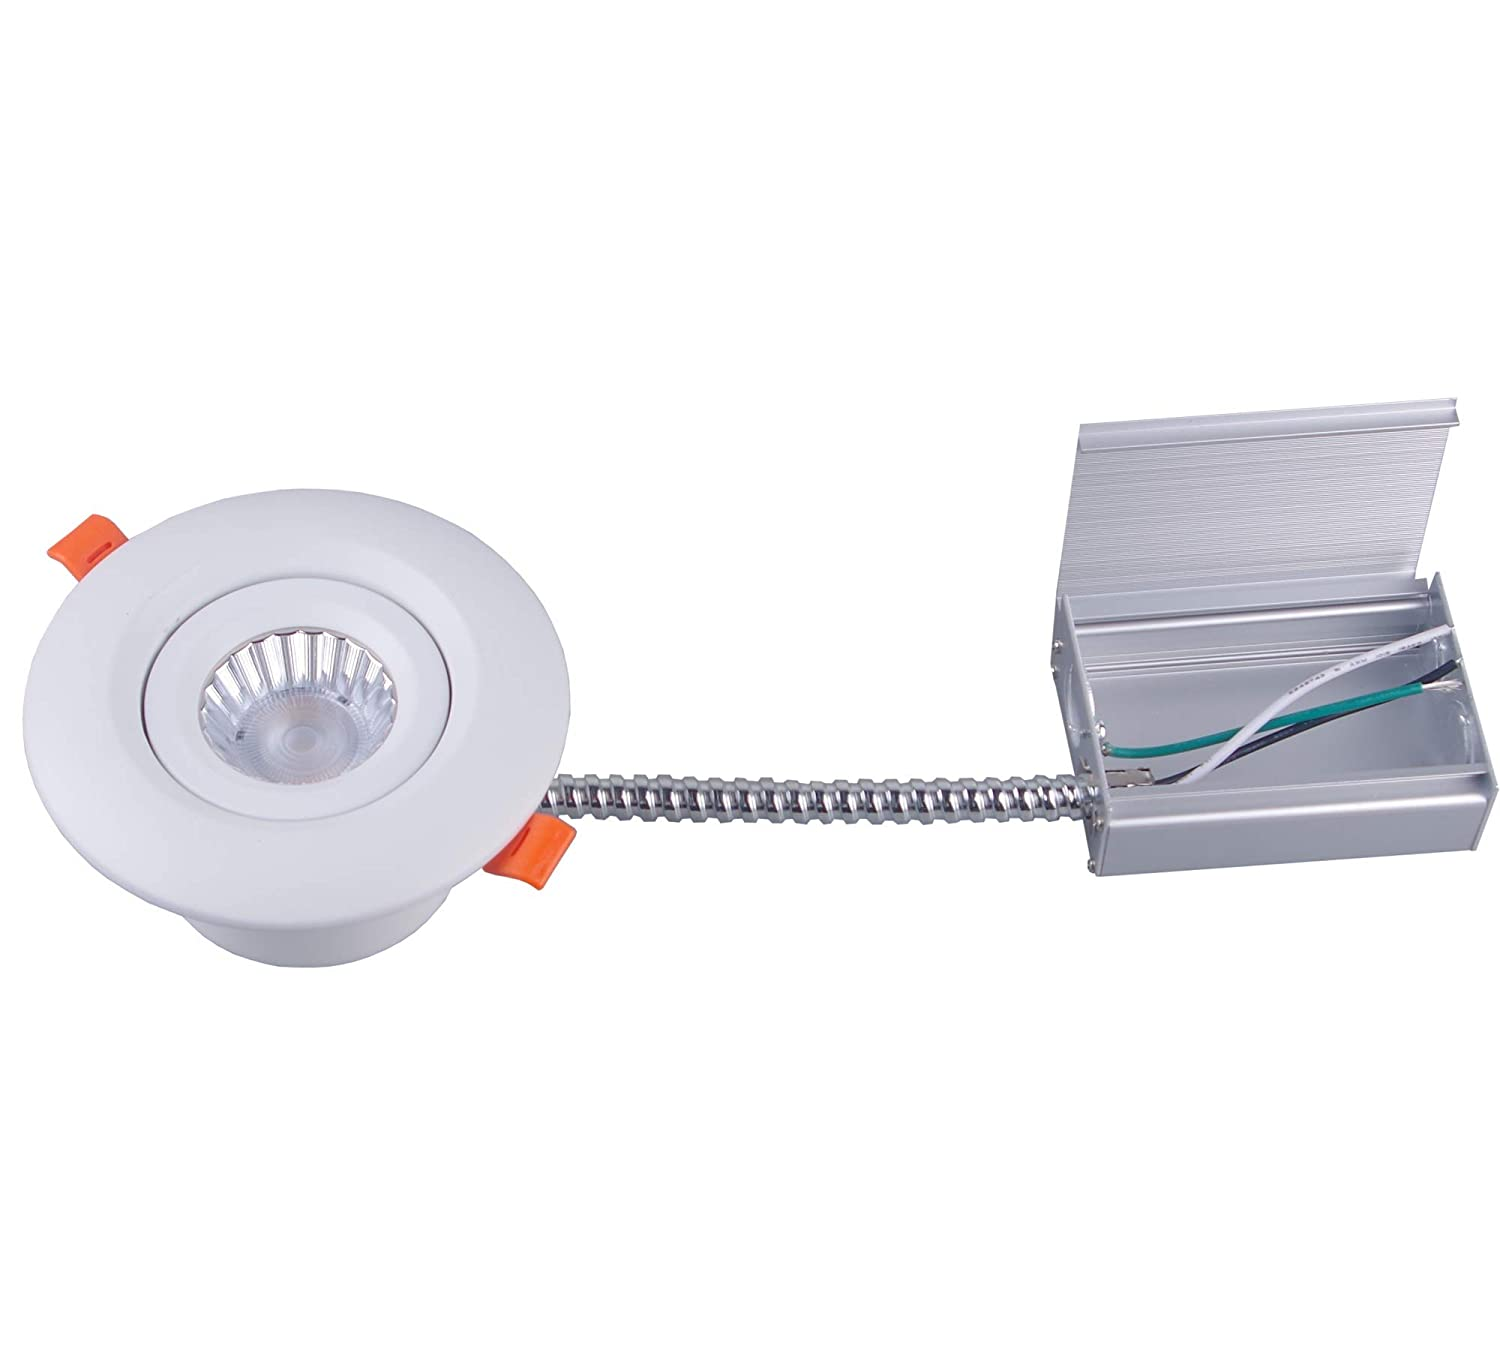 Pot Light 3.5 inch Led 9W, Metal Wiring Protection, Perfect for Kitchen, No housing Required, Insulation Contact Approved, Can be Installed Retrofit or New Construction (5000K Cool White)